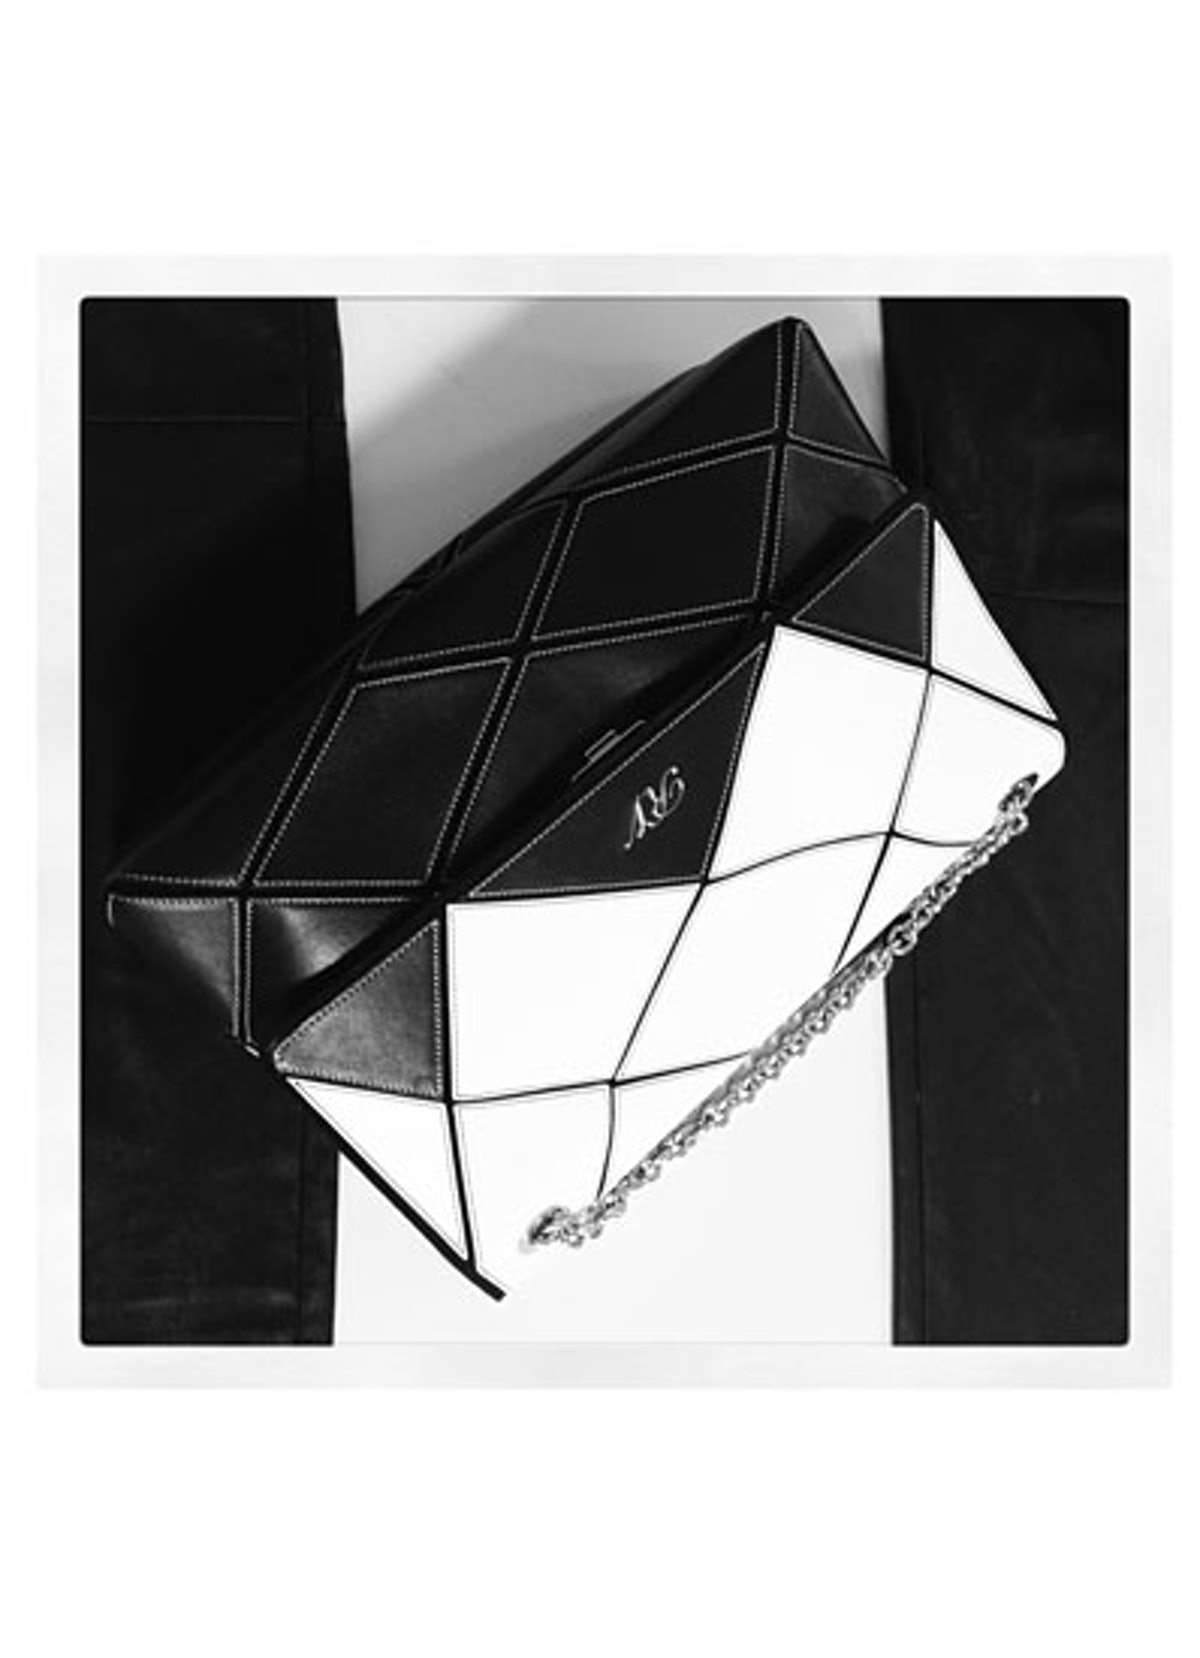 acss-black-and-white-accessories-02-v.jpg